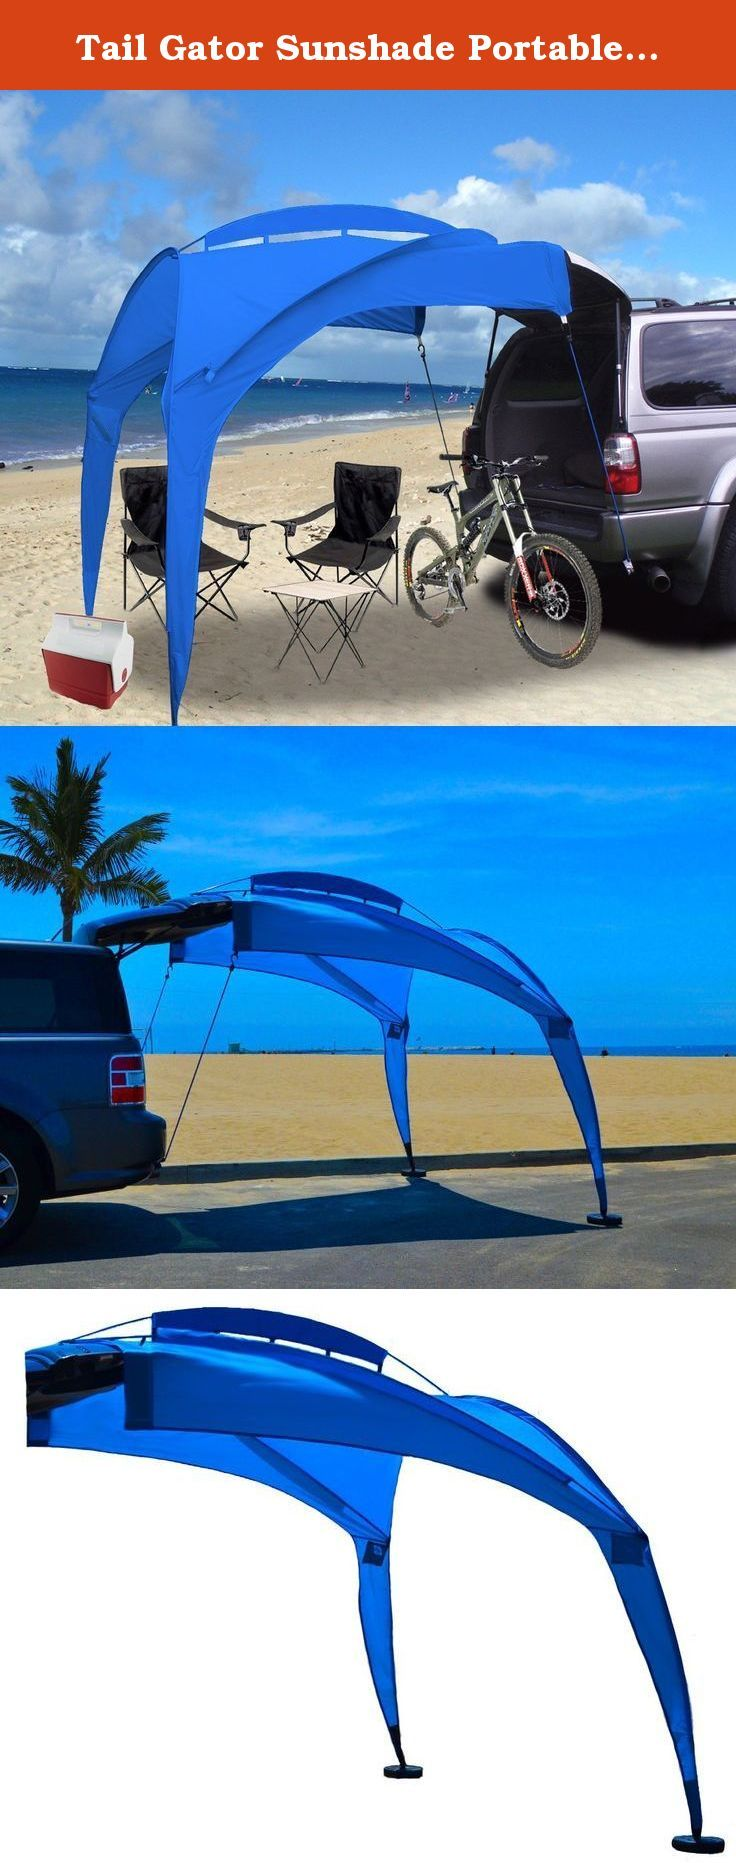 Tail Gator Sunshade Portable Shade - Blue. The Tail Gator Sunshade® is perfect for chillin' out and enjoying life at the beach, tailgating or fishing your favorite spot. It is quickly assembled, simpler than a tent, and provide a well needed extension of your vehicle for those sunny days when you want to stay cool. The Tailgator attaches to the top of your car roof, or to the ledge of the 5th door of your SUV. It can be assembled on a hard (parking asphalt) or a soft surface (dirt or…